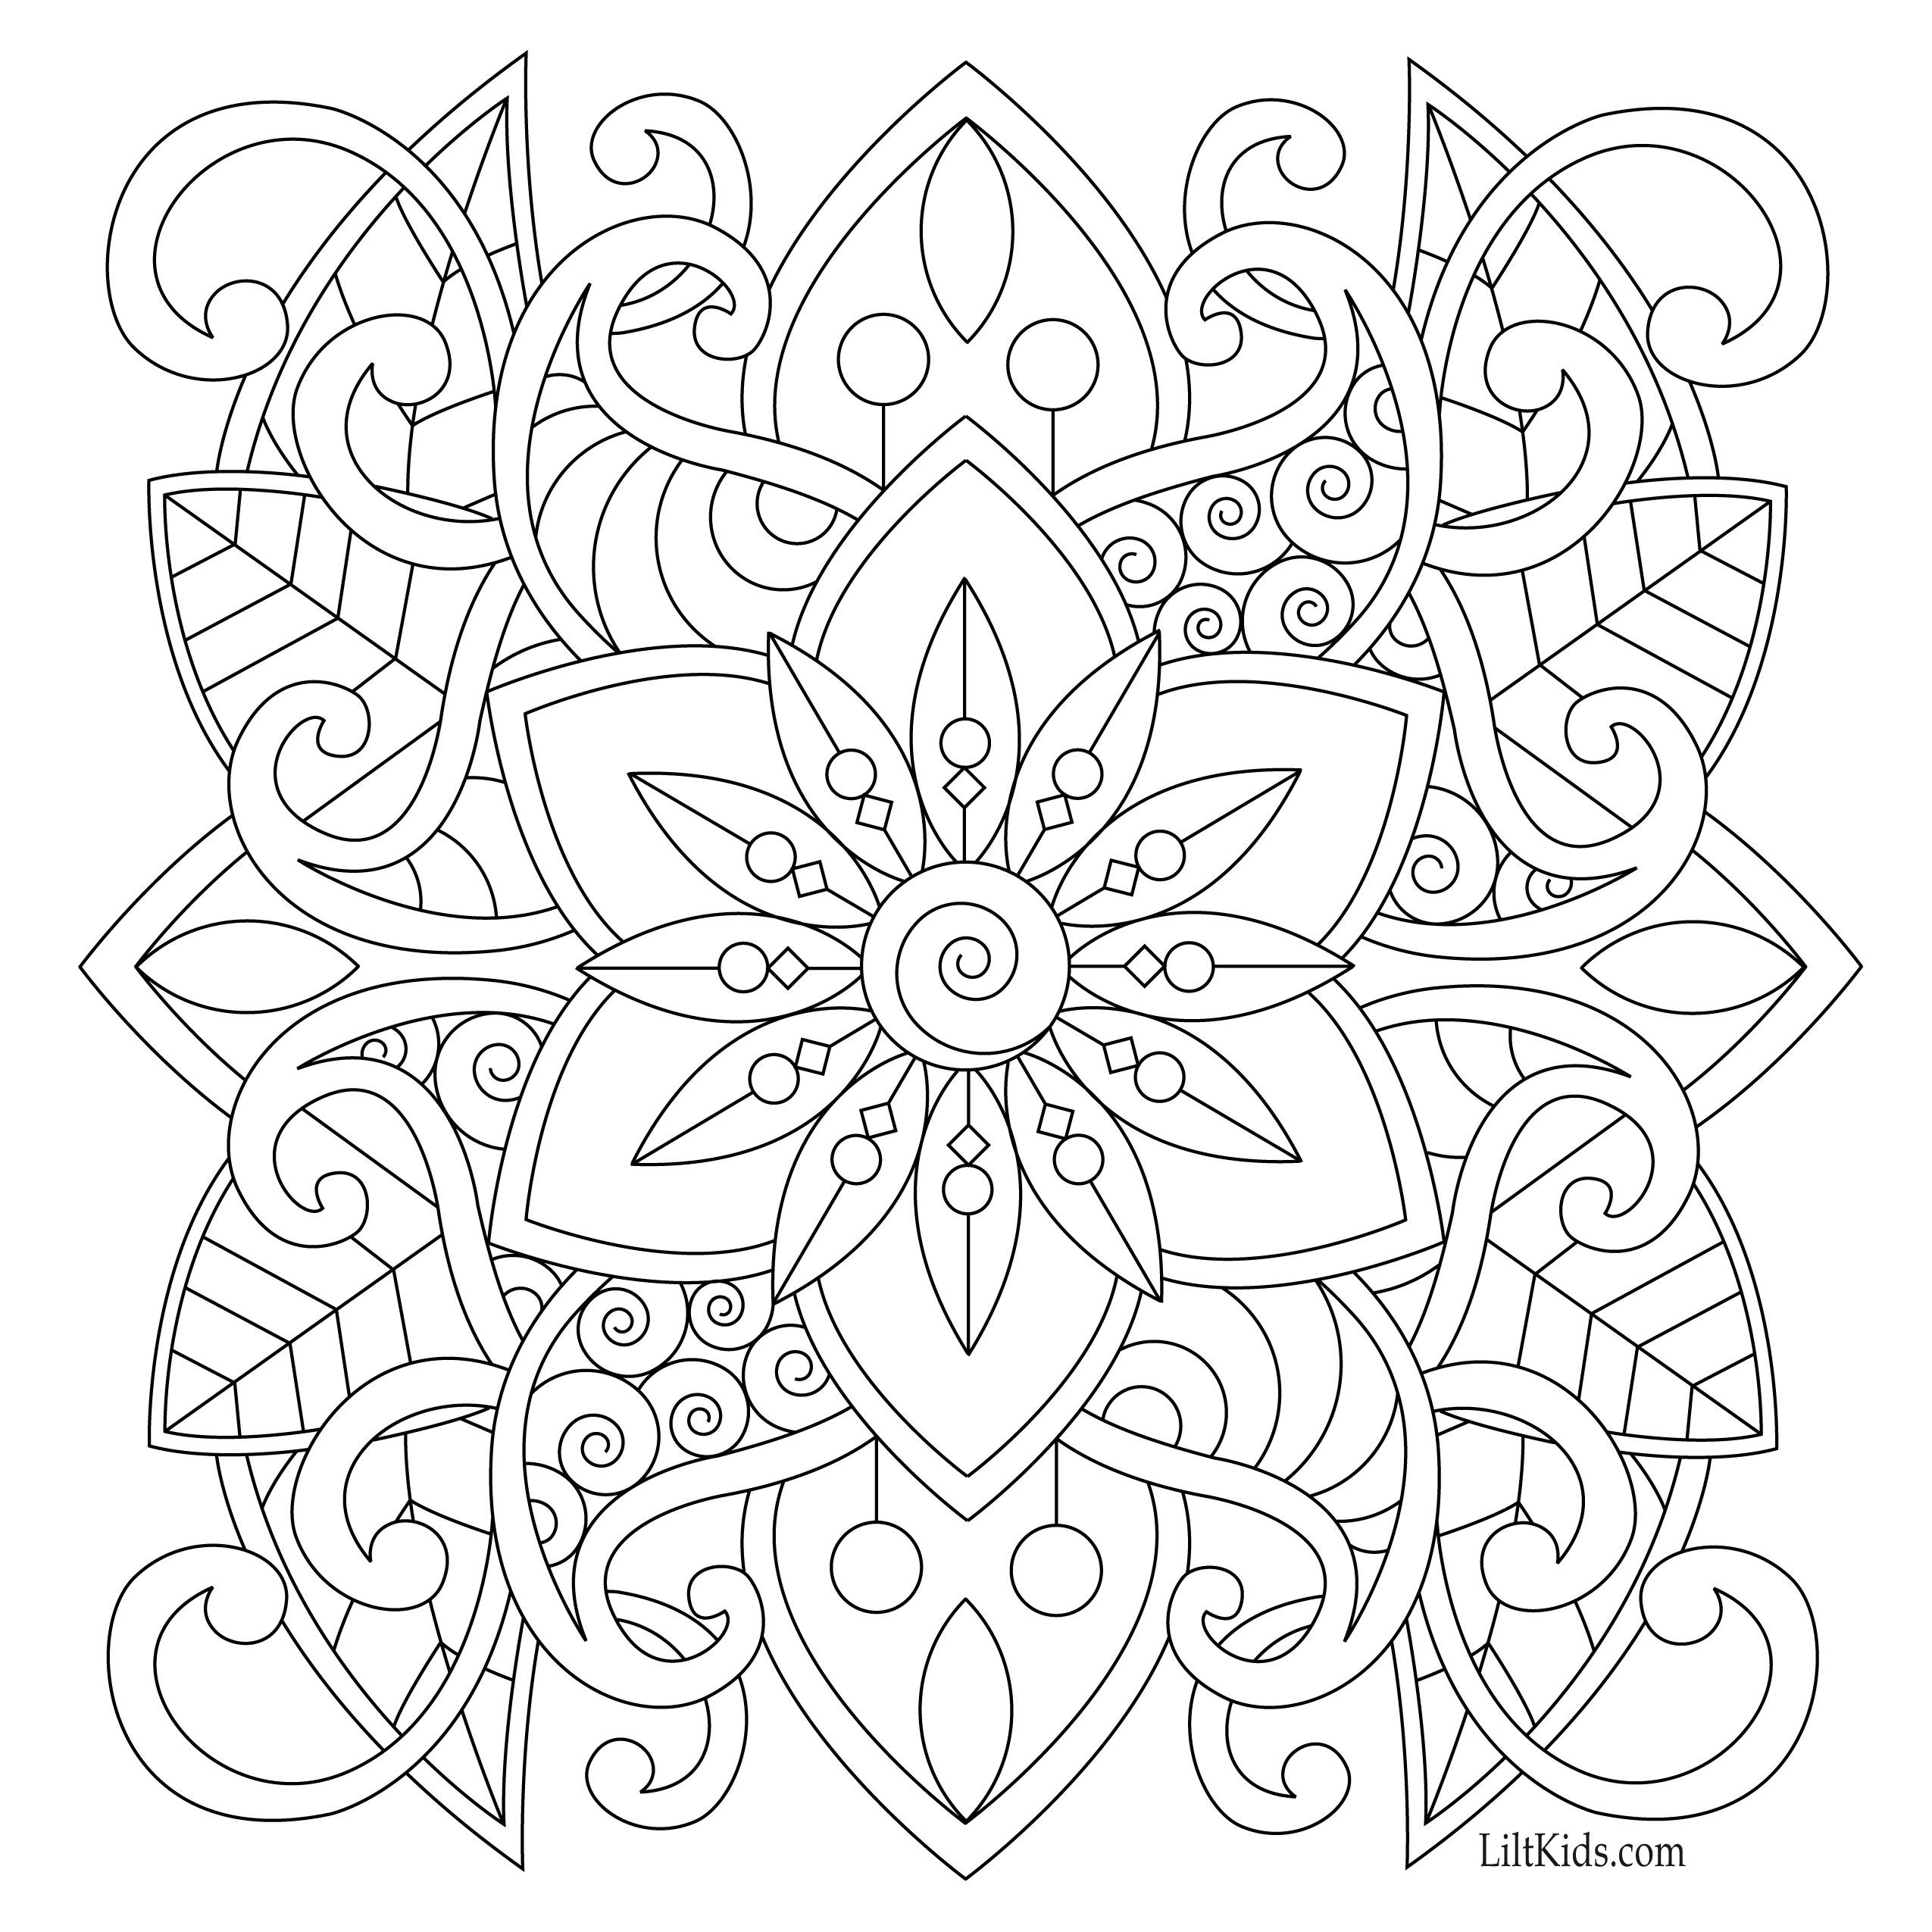 Free Easy Mandala For Beginners Adult Coloring Book Image From Liltkids See More Free Adult